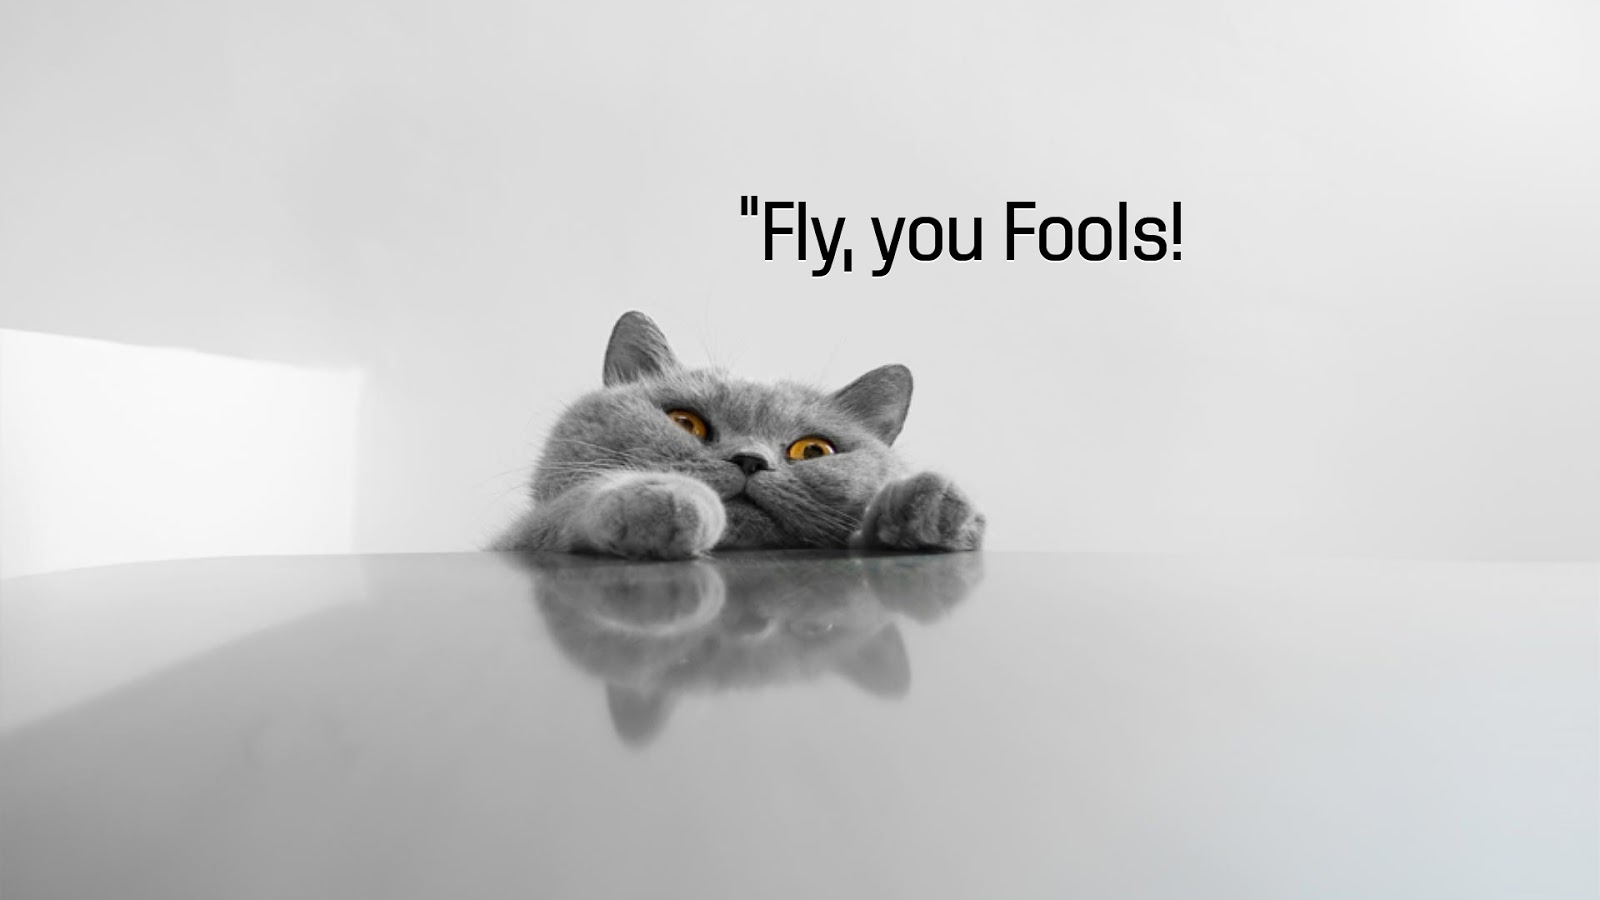 Fly You Fools Cat Funny Wallpapers HD